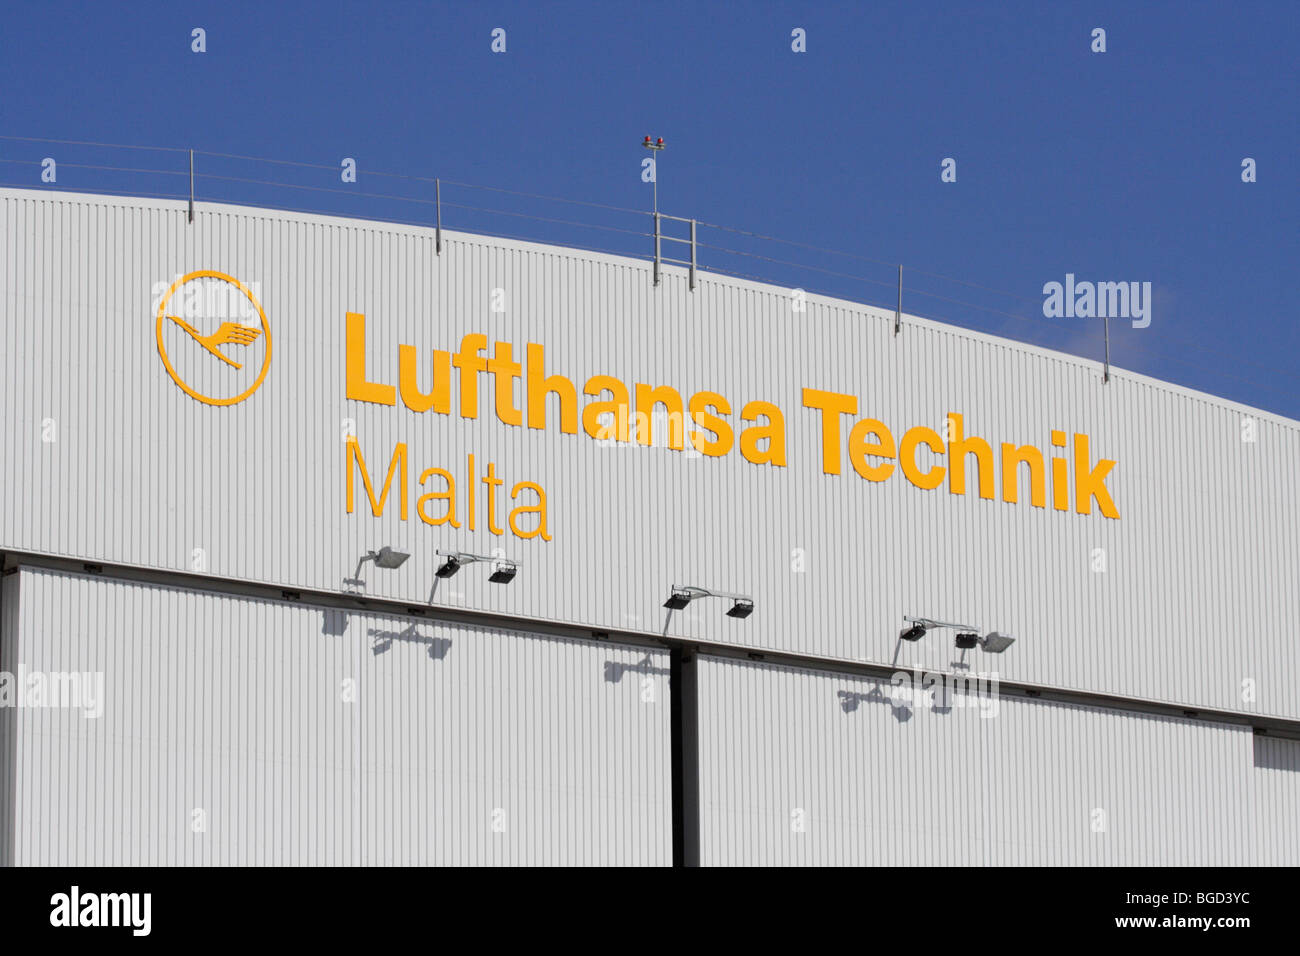 Detail from the Lufthansa Technik Malta hangars at Malta International Airport. Editorial use only. - Stock Image